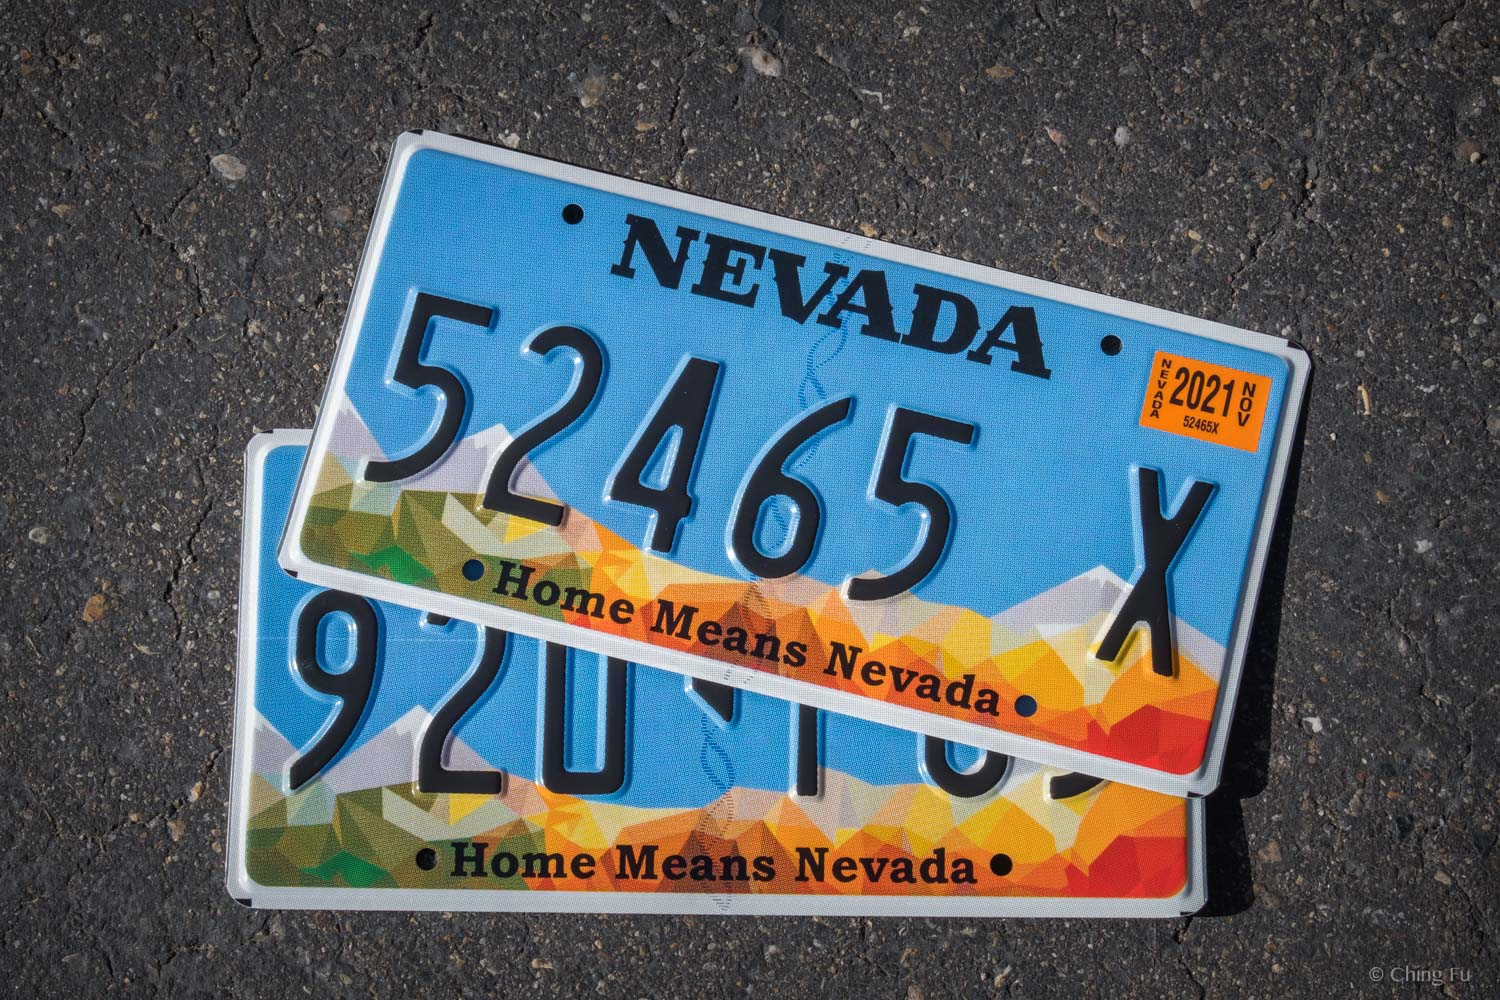 Our Nevada license plates.